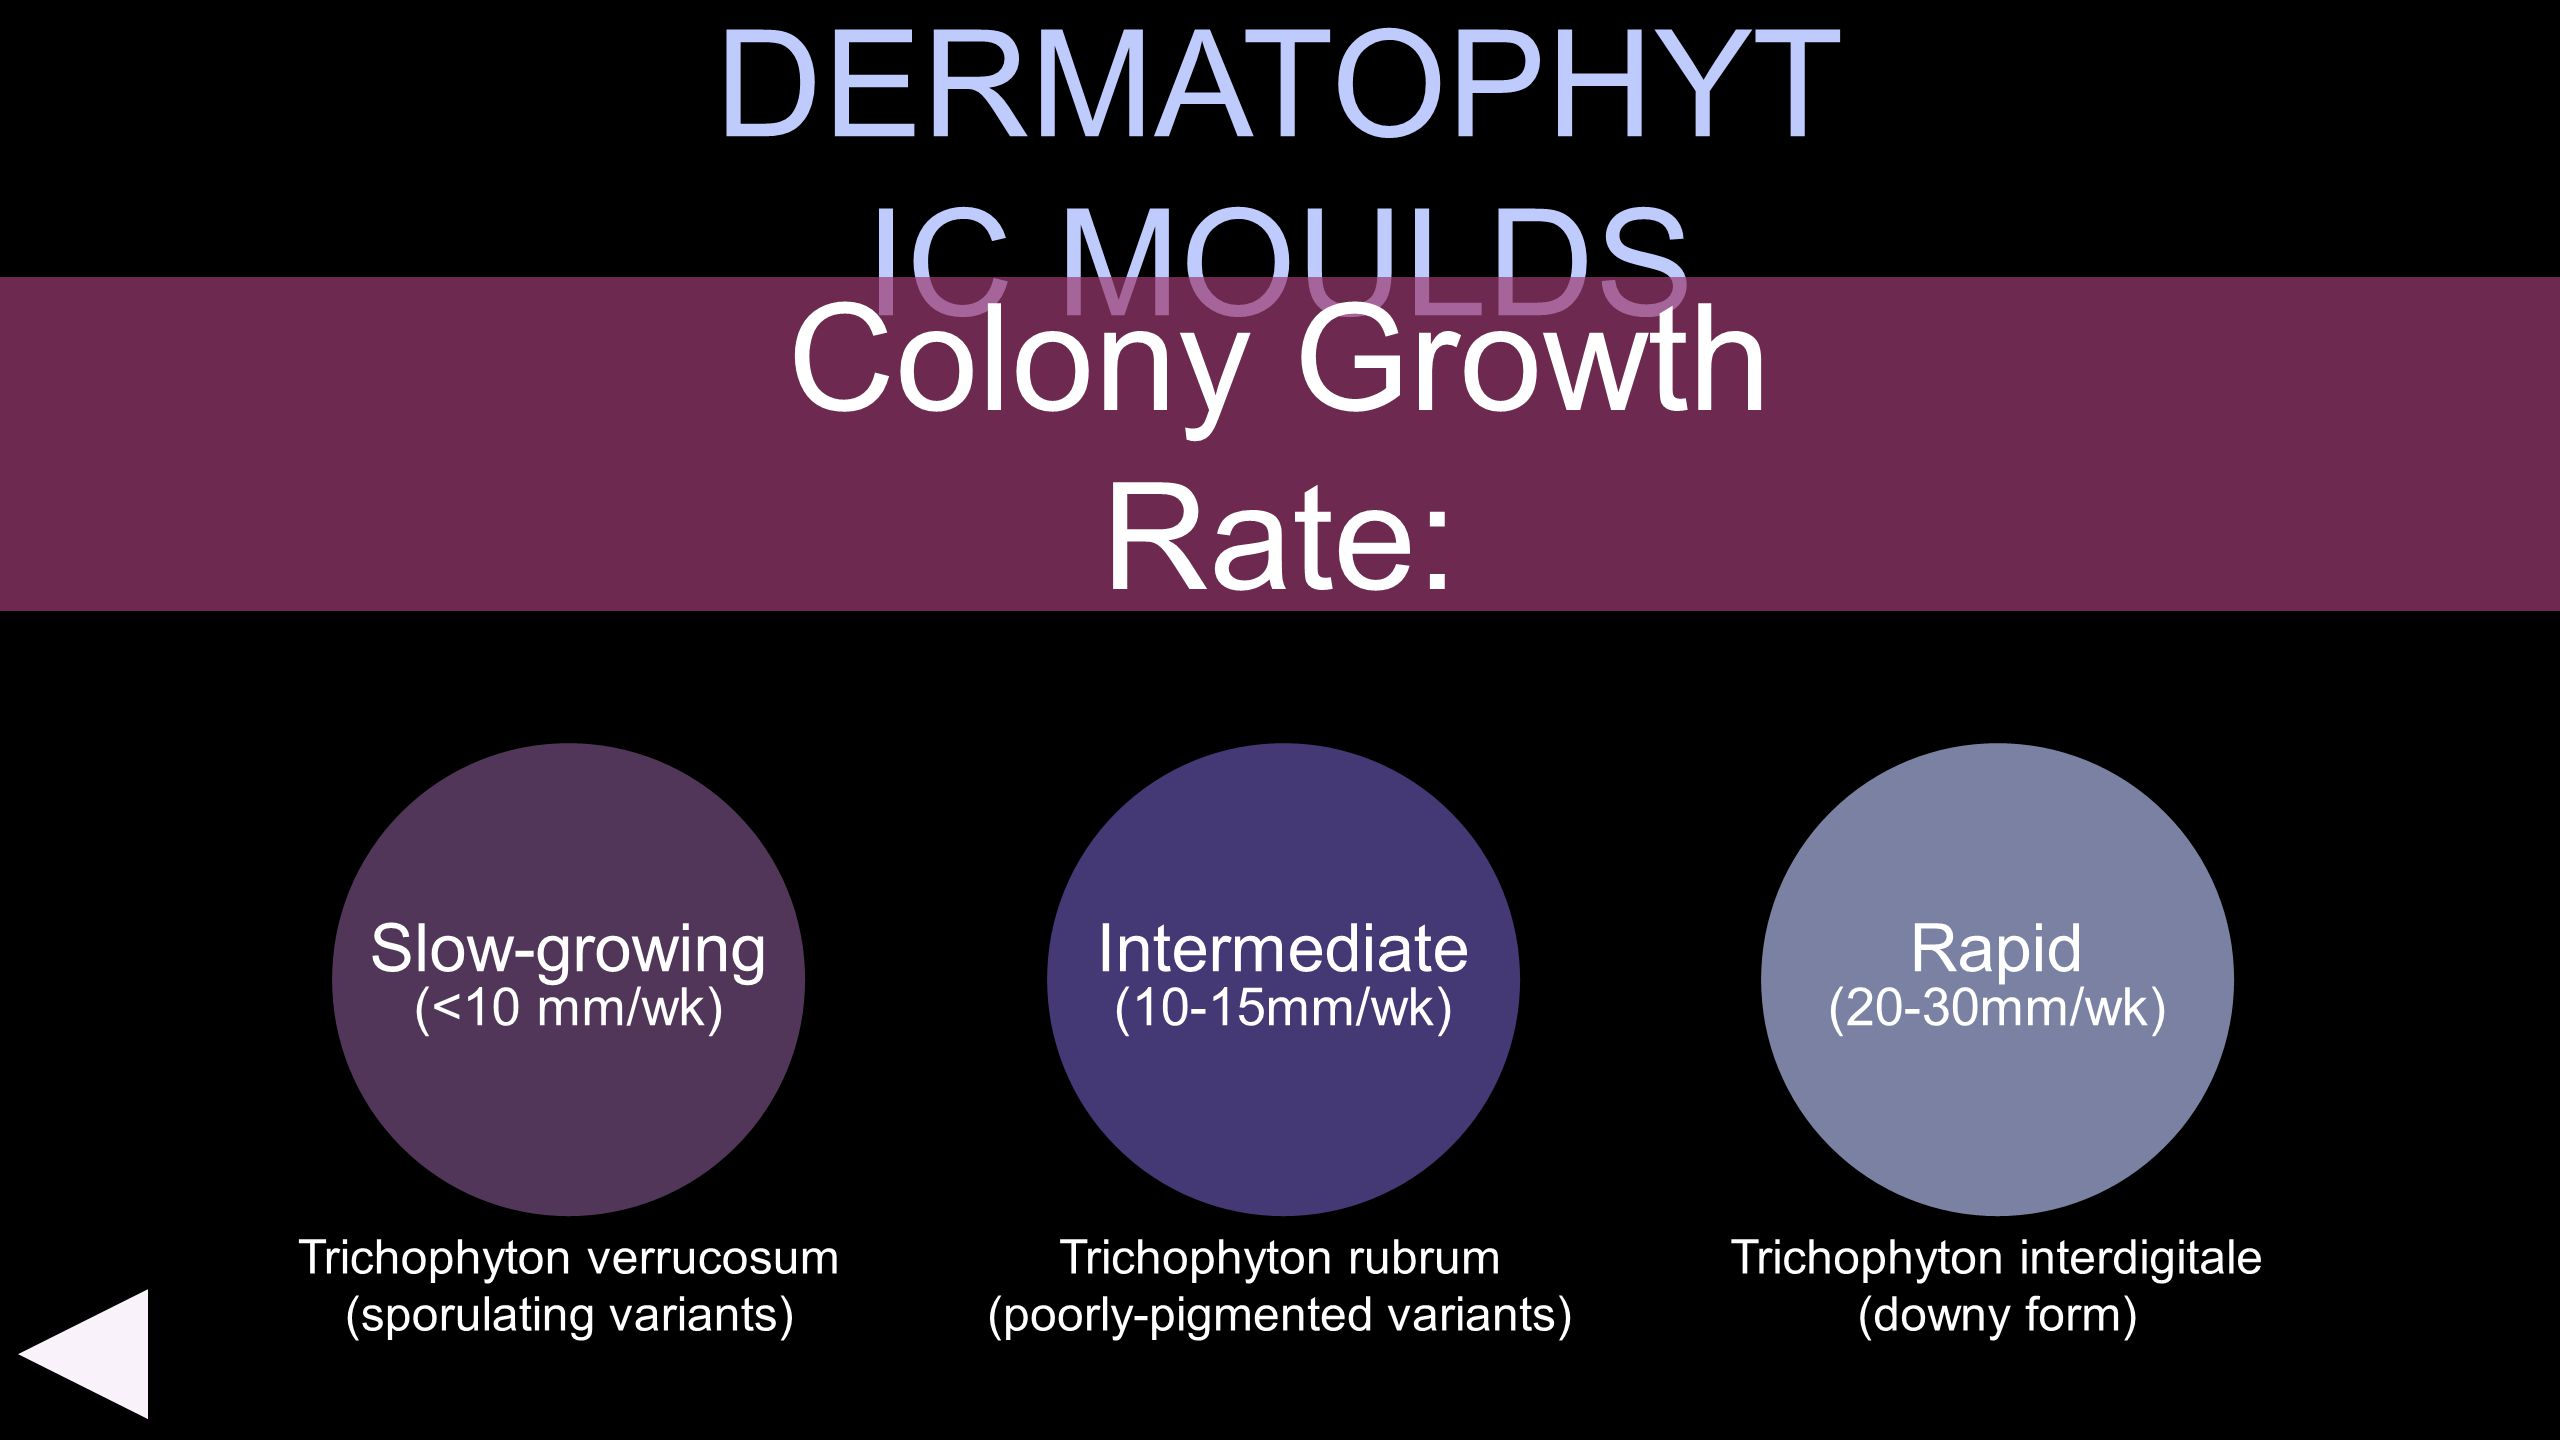 DERMATOPHYTIC MOULDS Colony Growth Rate: Slow-growing Intermediate